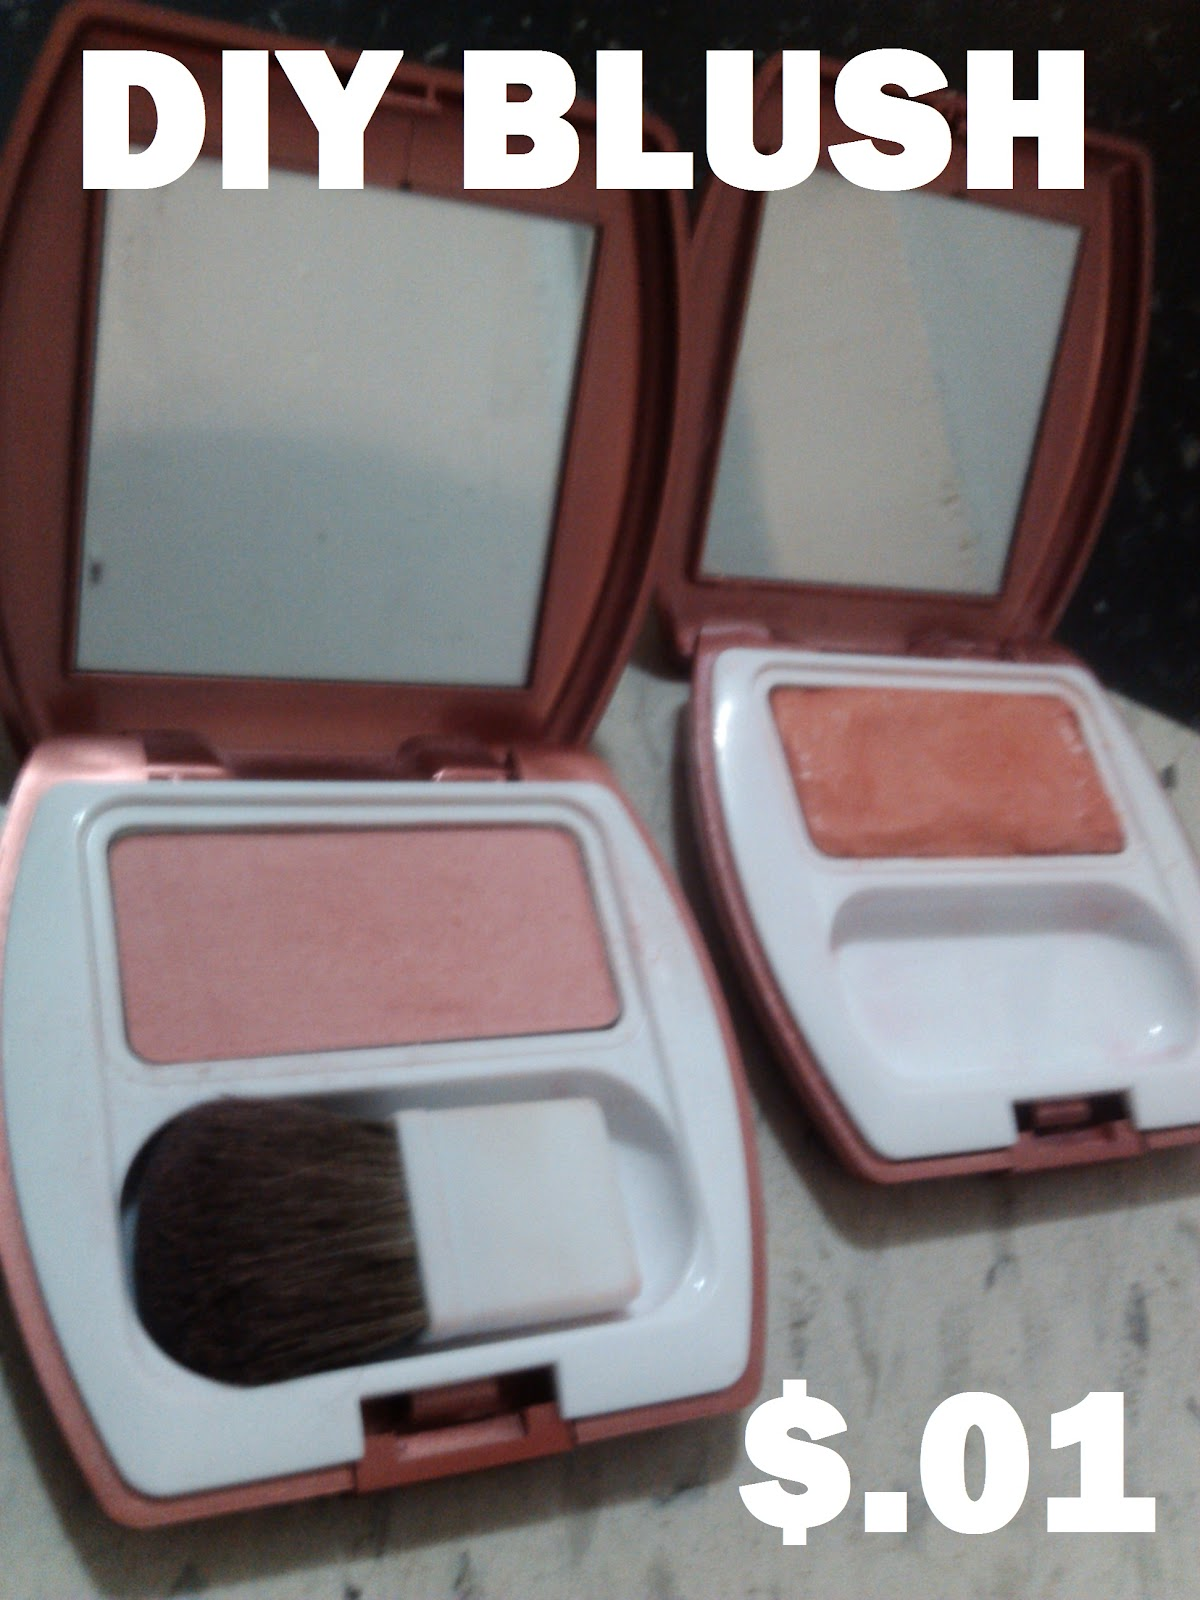 My American Confessions: Tuesday: How to.... DIY Blush